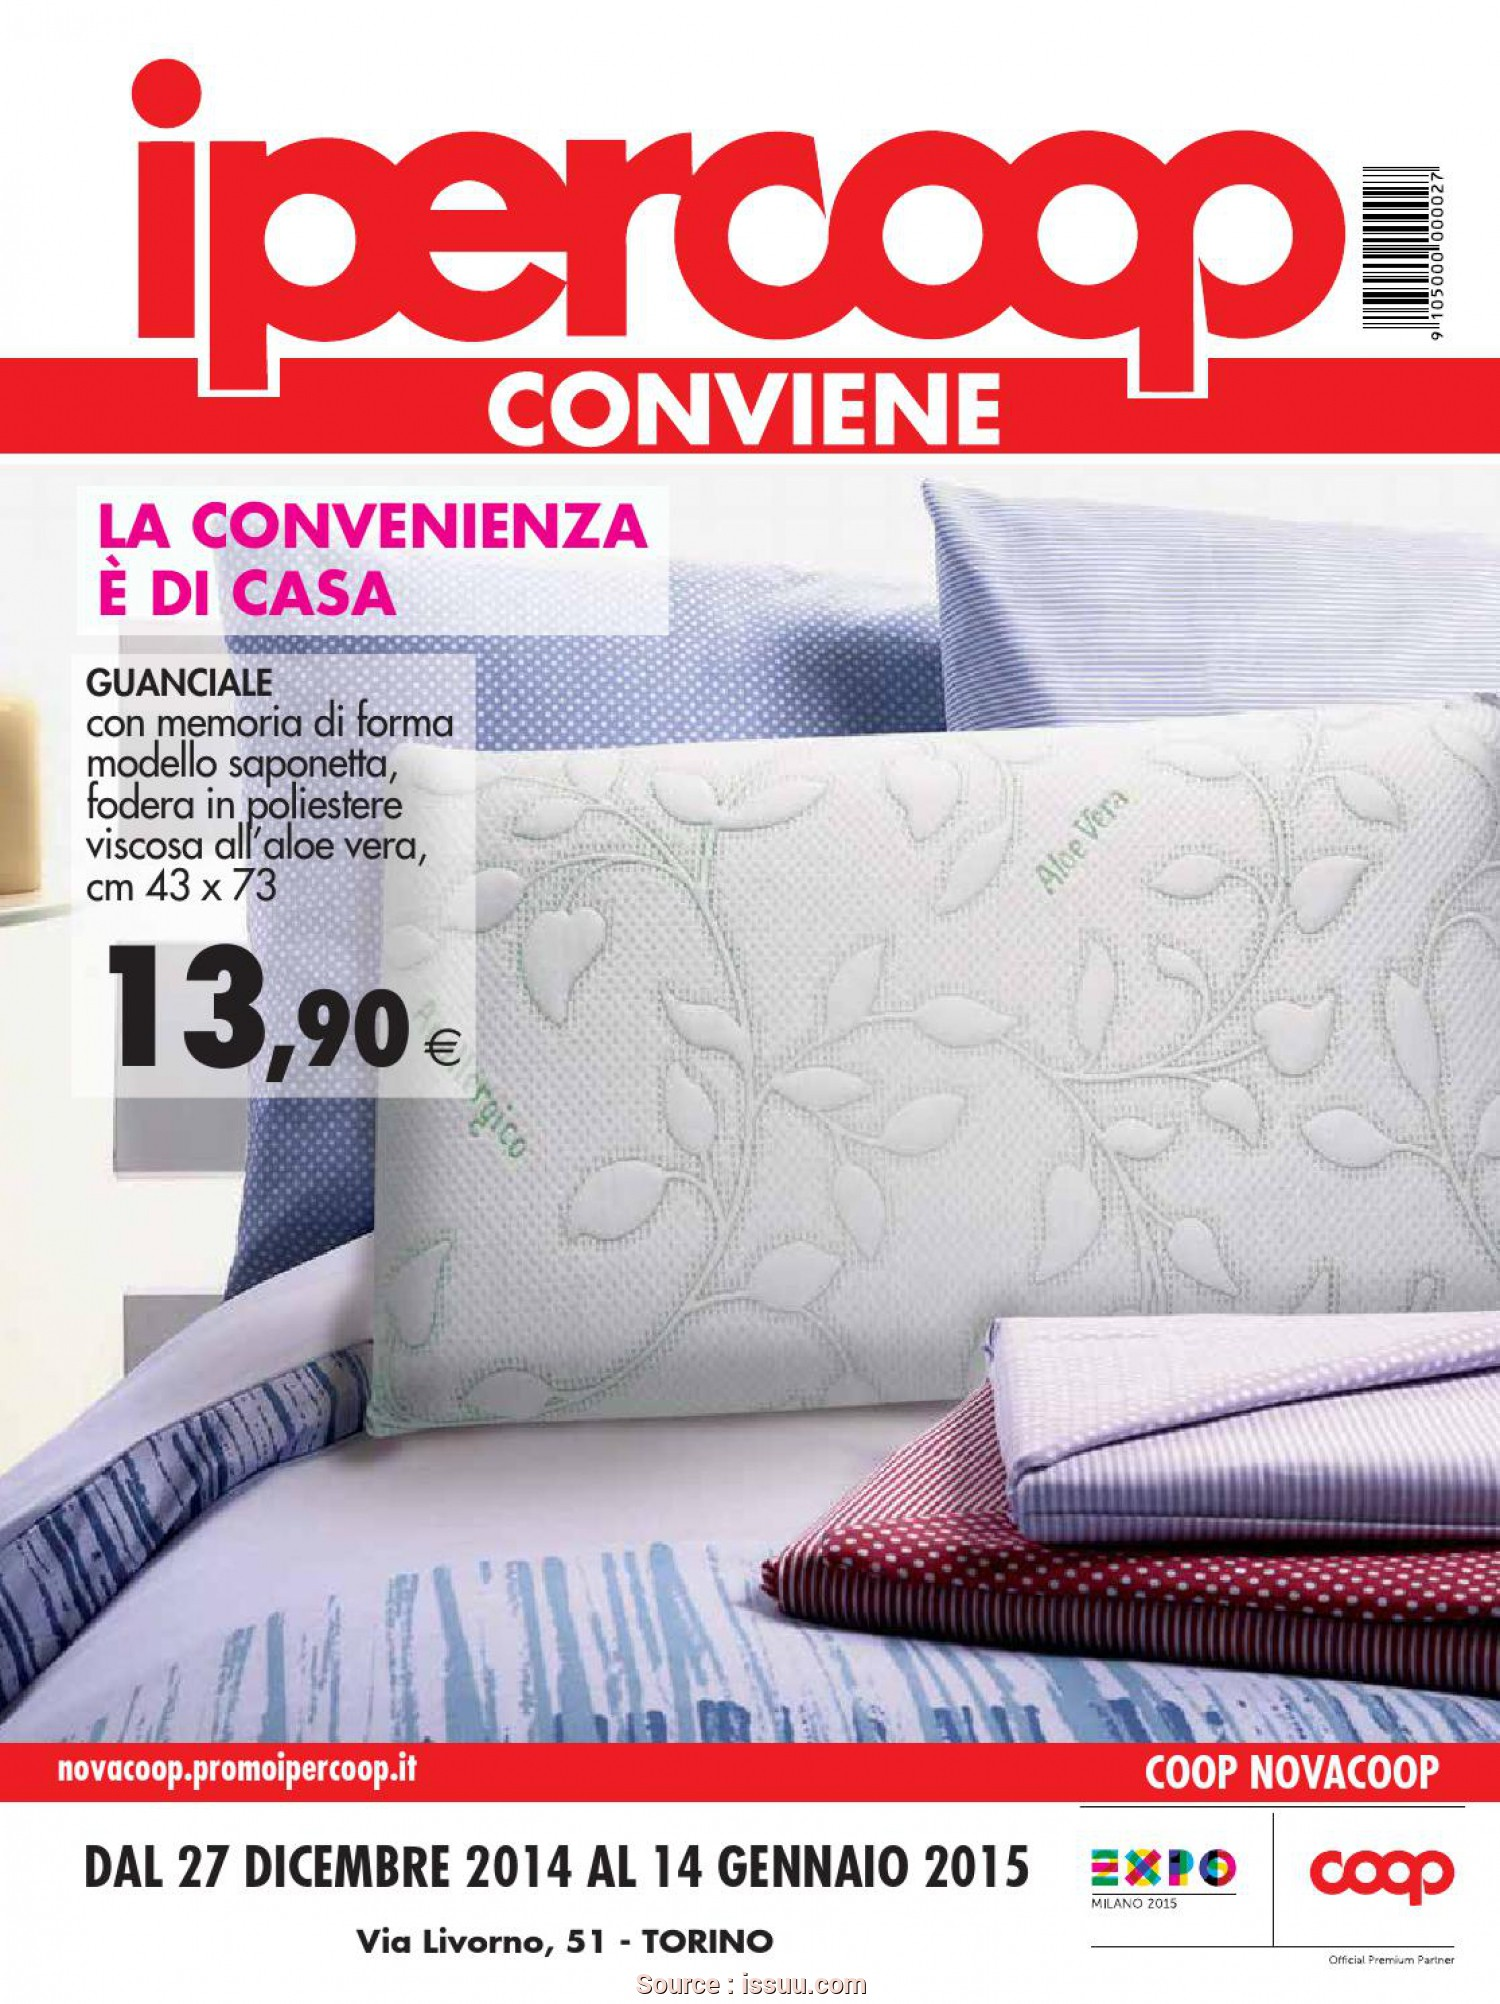 Divano Offerta Ipercoop, Loveable Ipercoop Piemonte